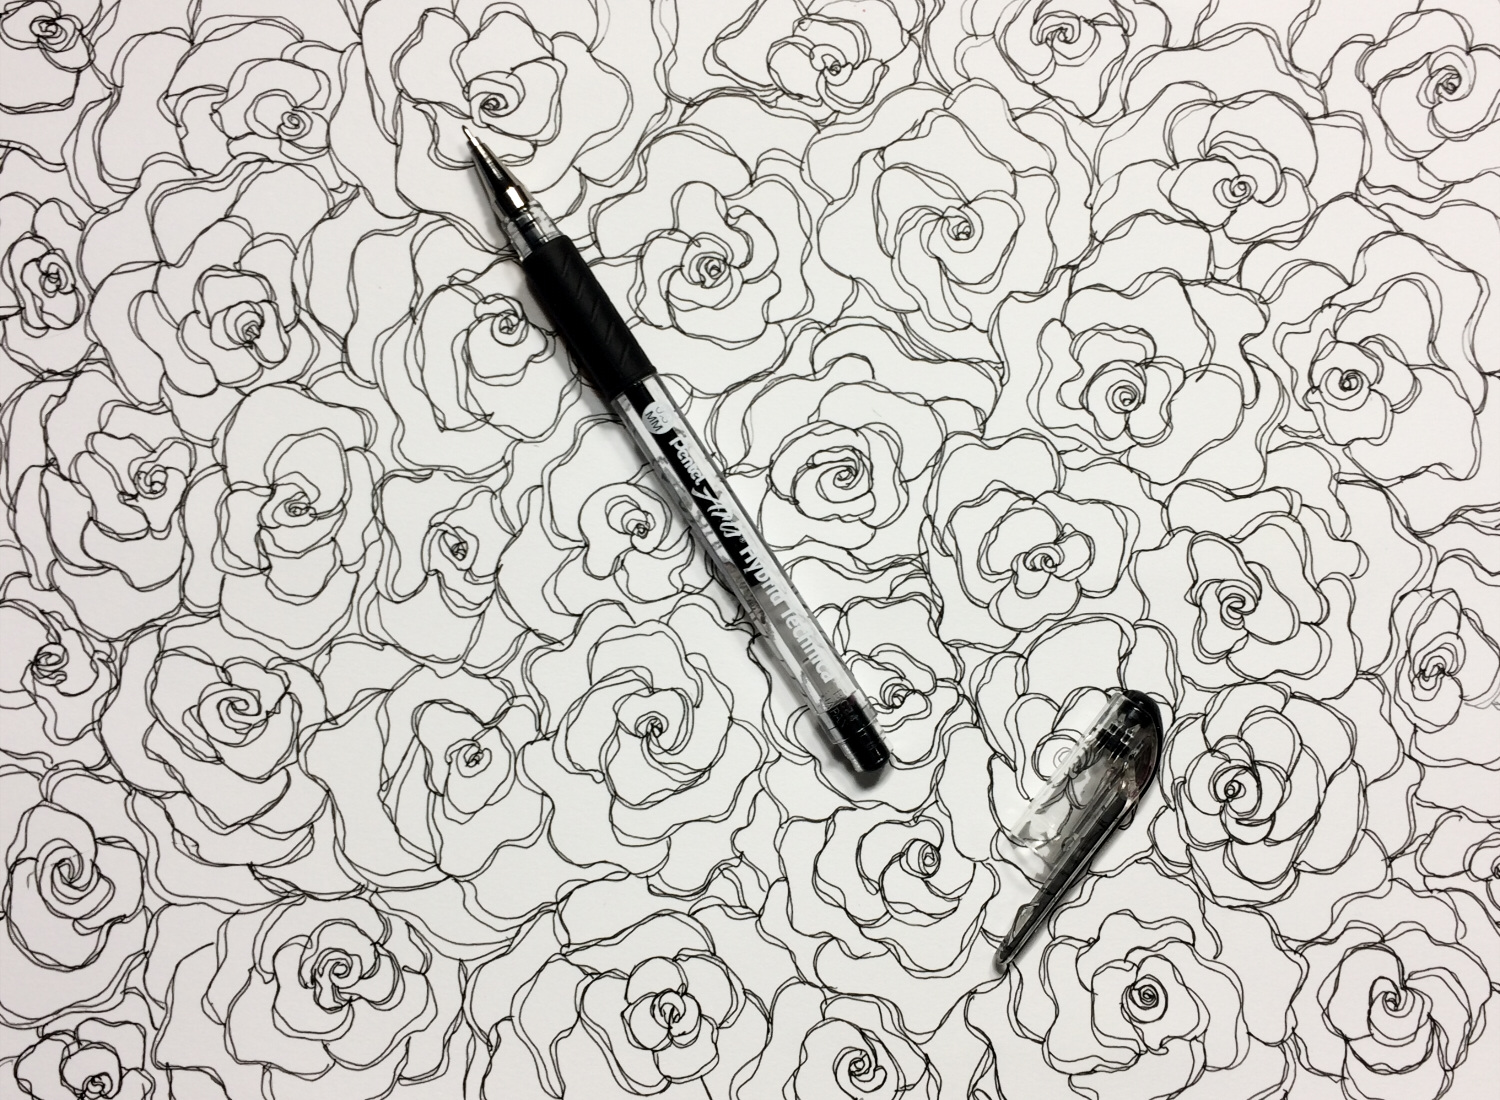 completed-rose-pattern-with-pen.jpg